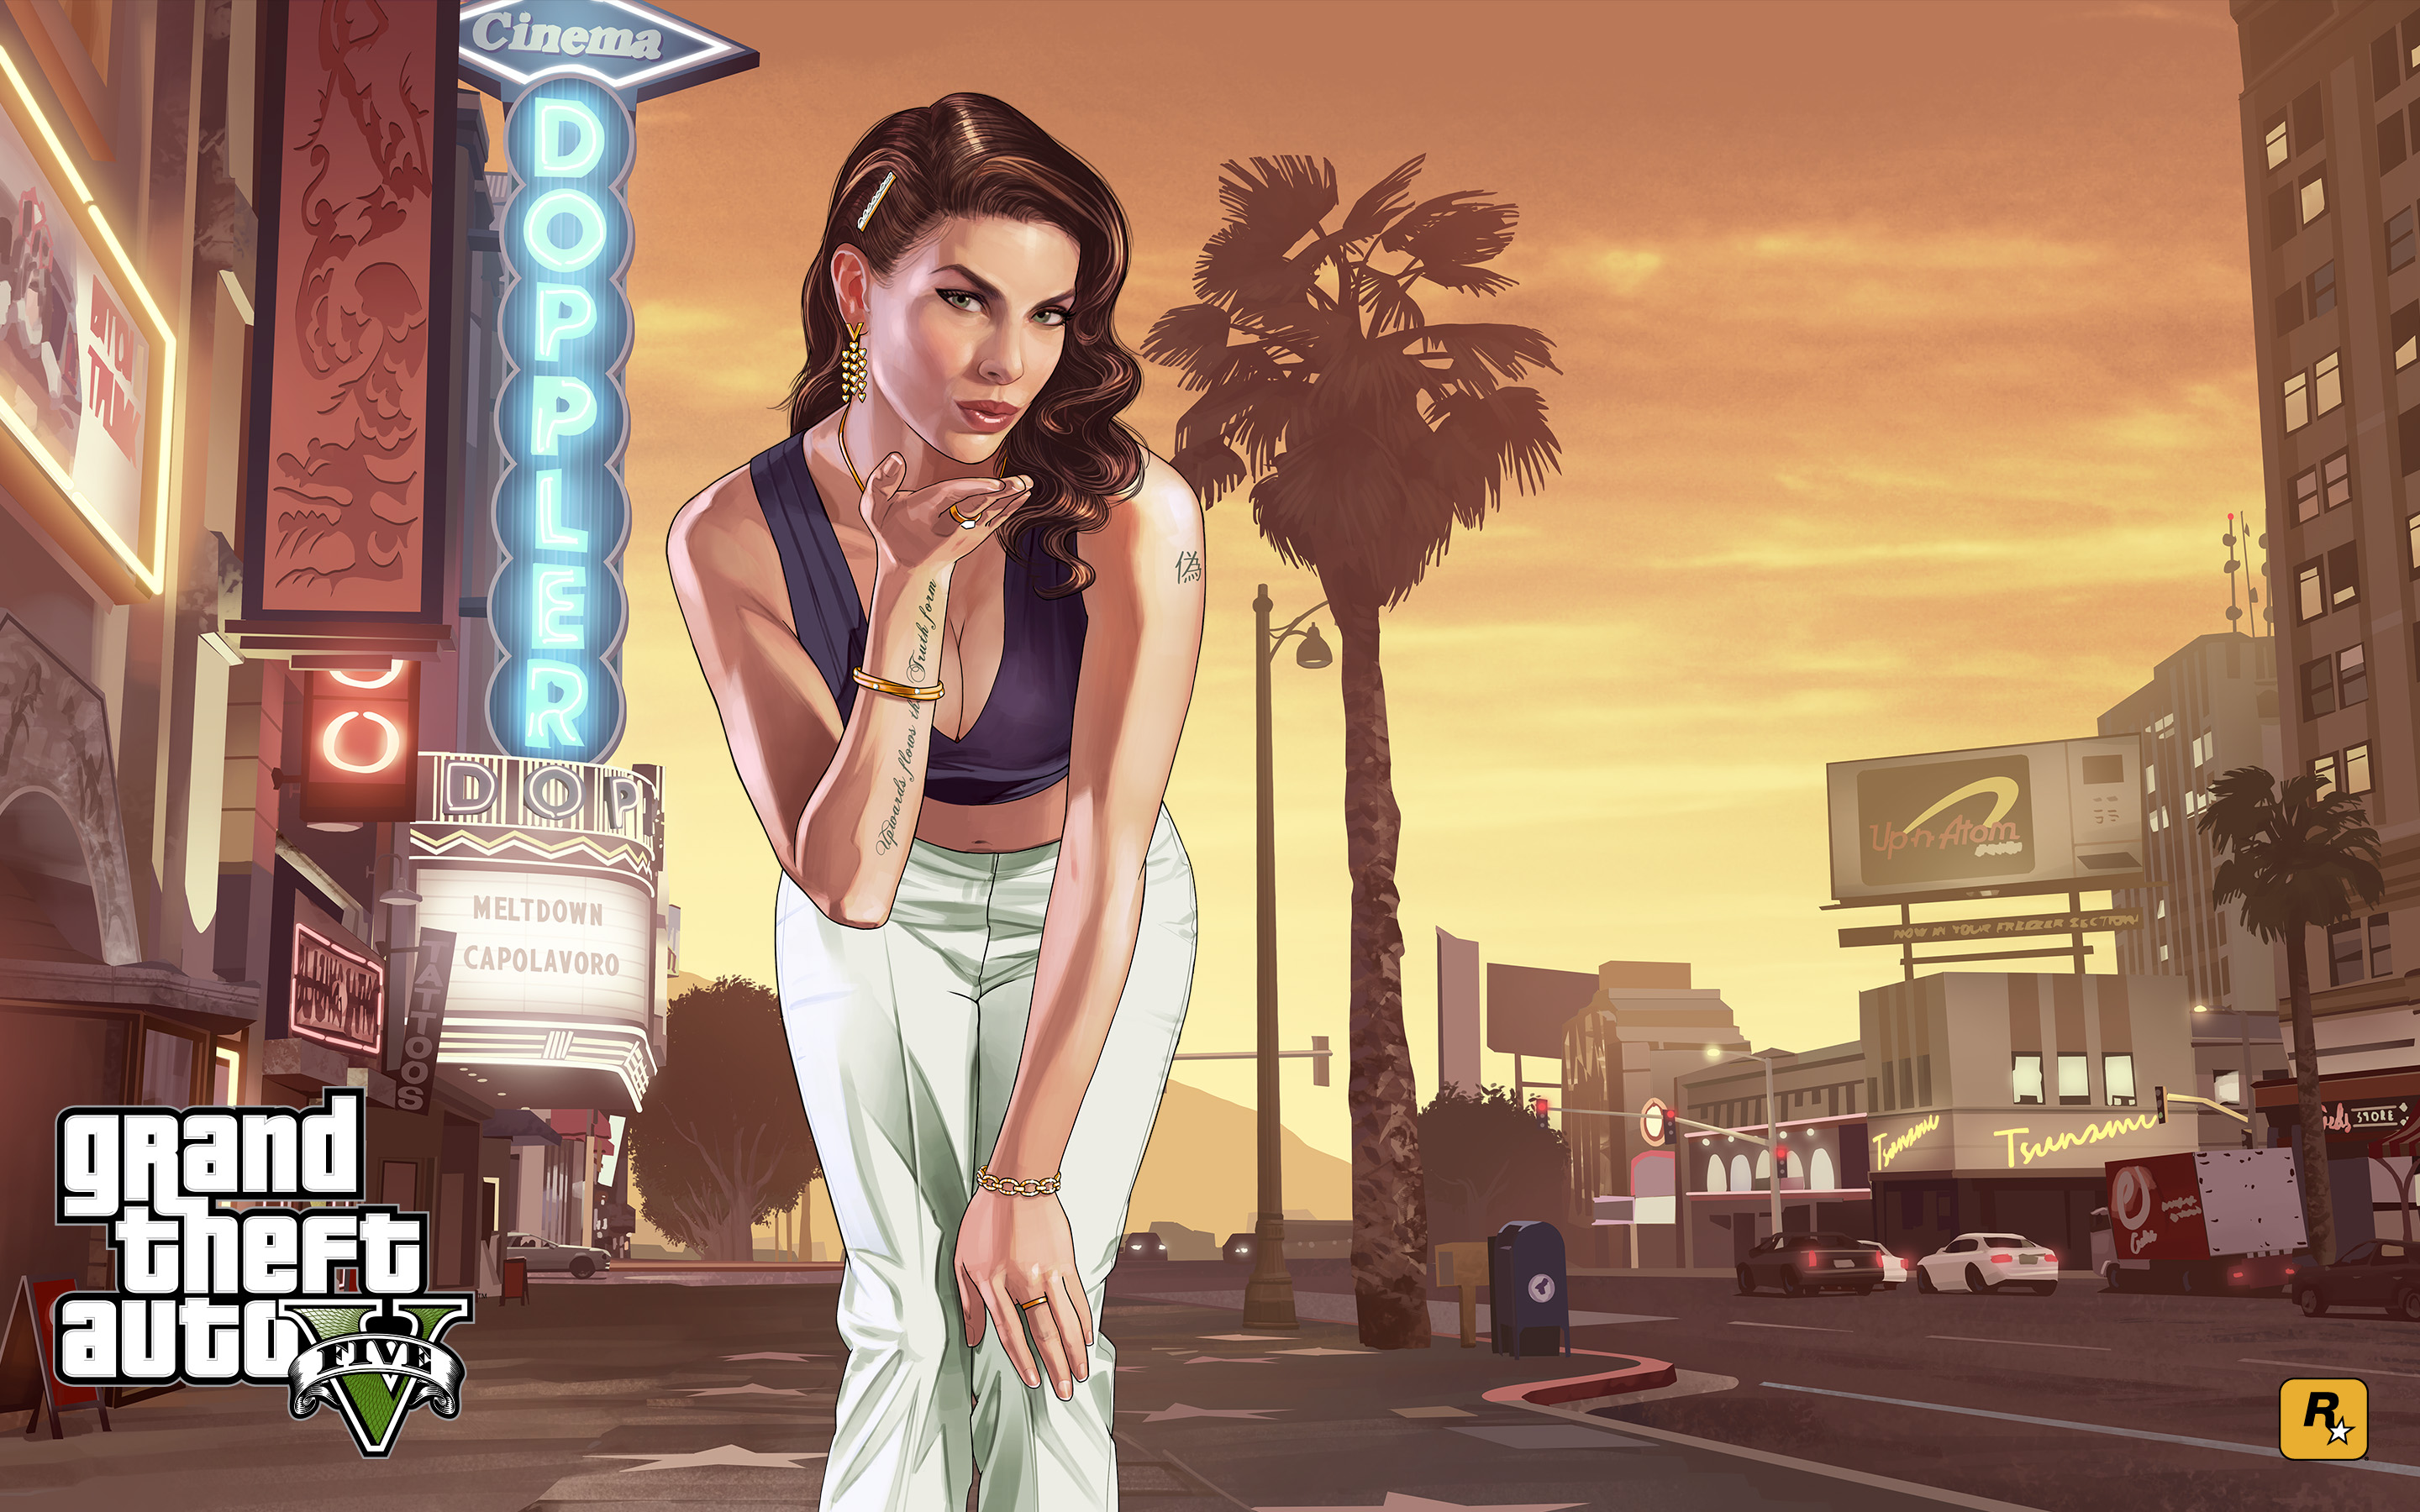 the gta place - gta v artwork